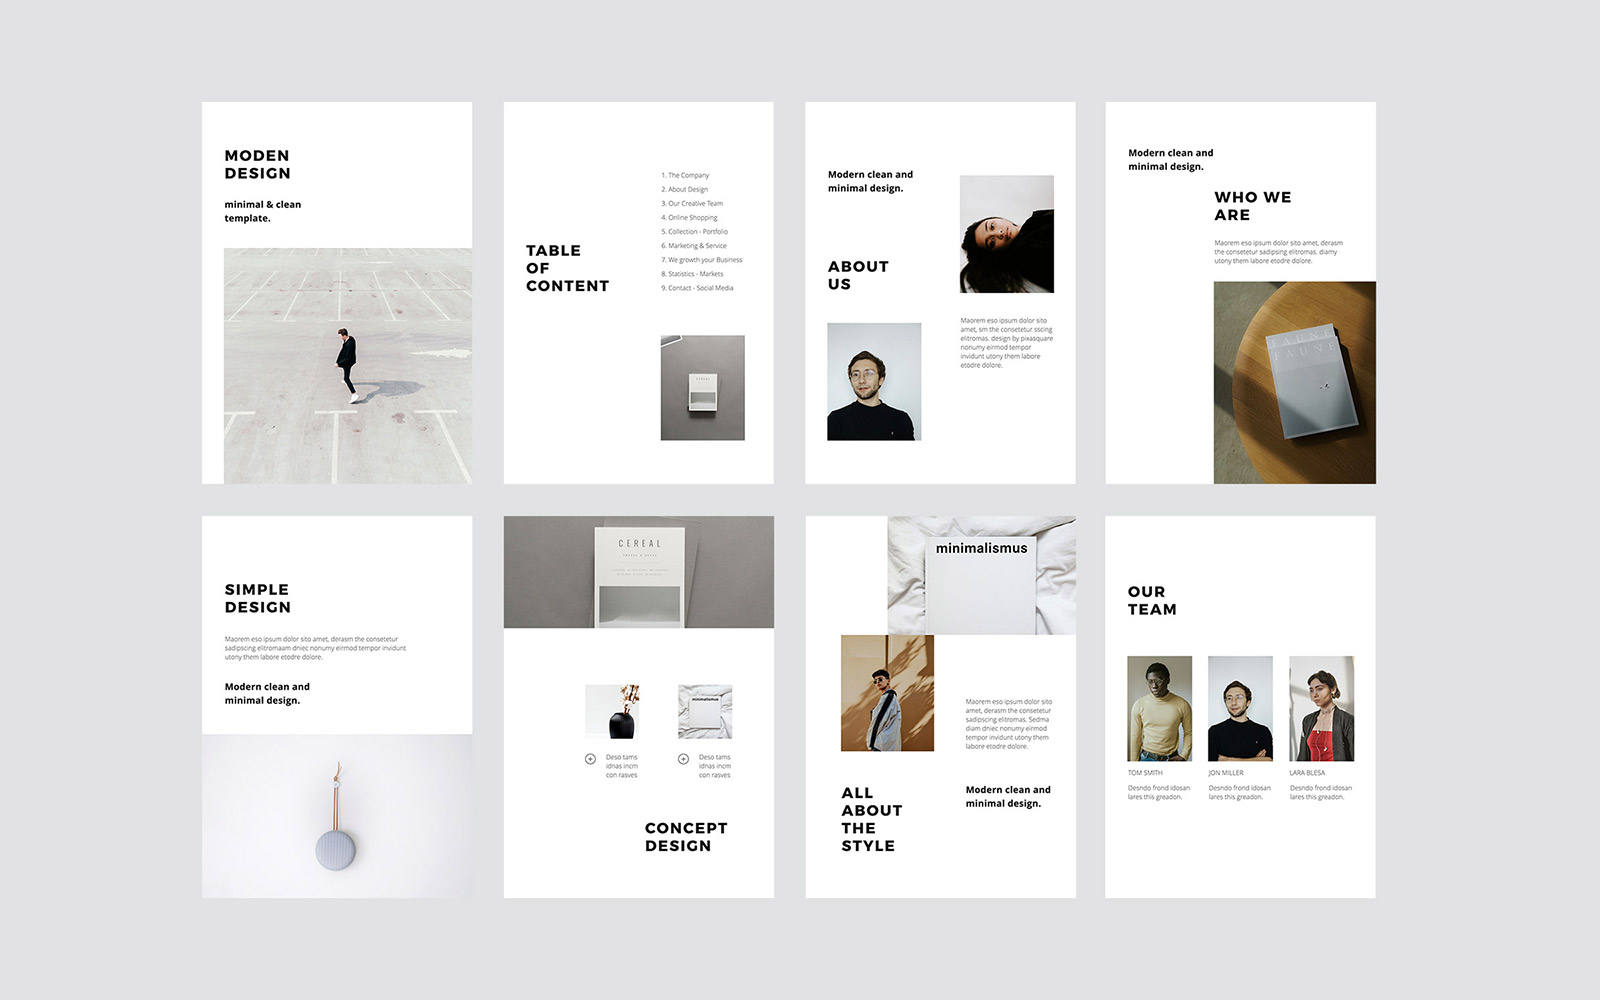 MODEN - A4 Vertical Style PowerPoint Template